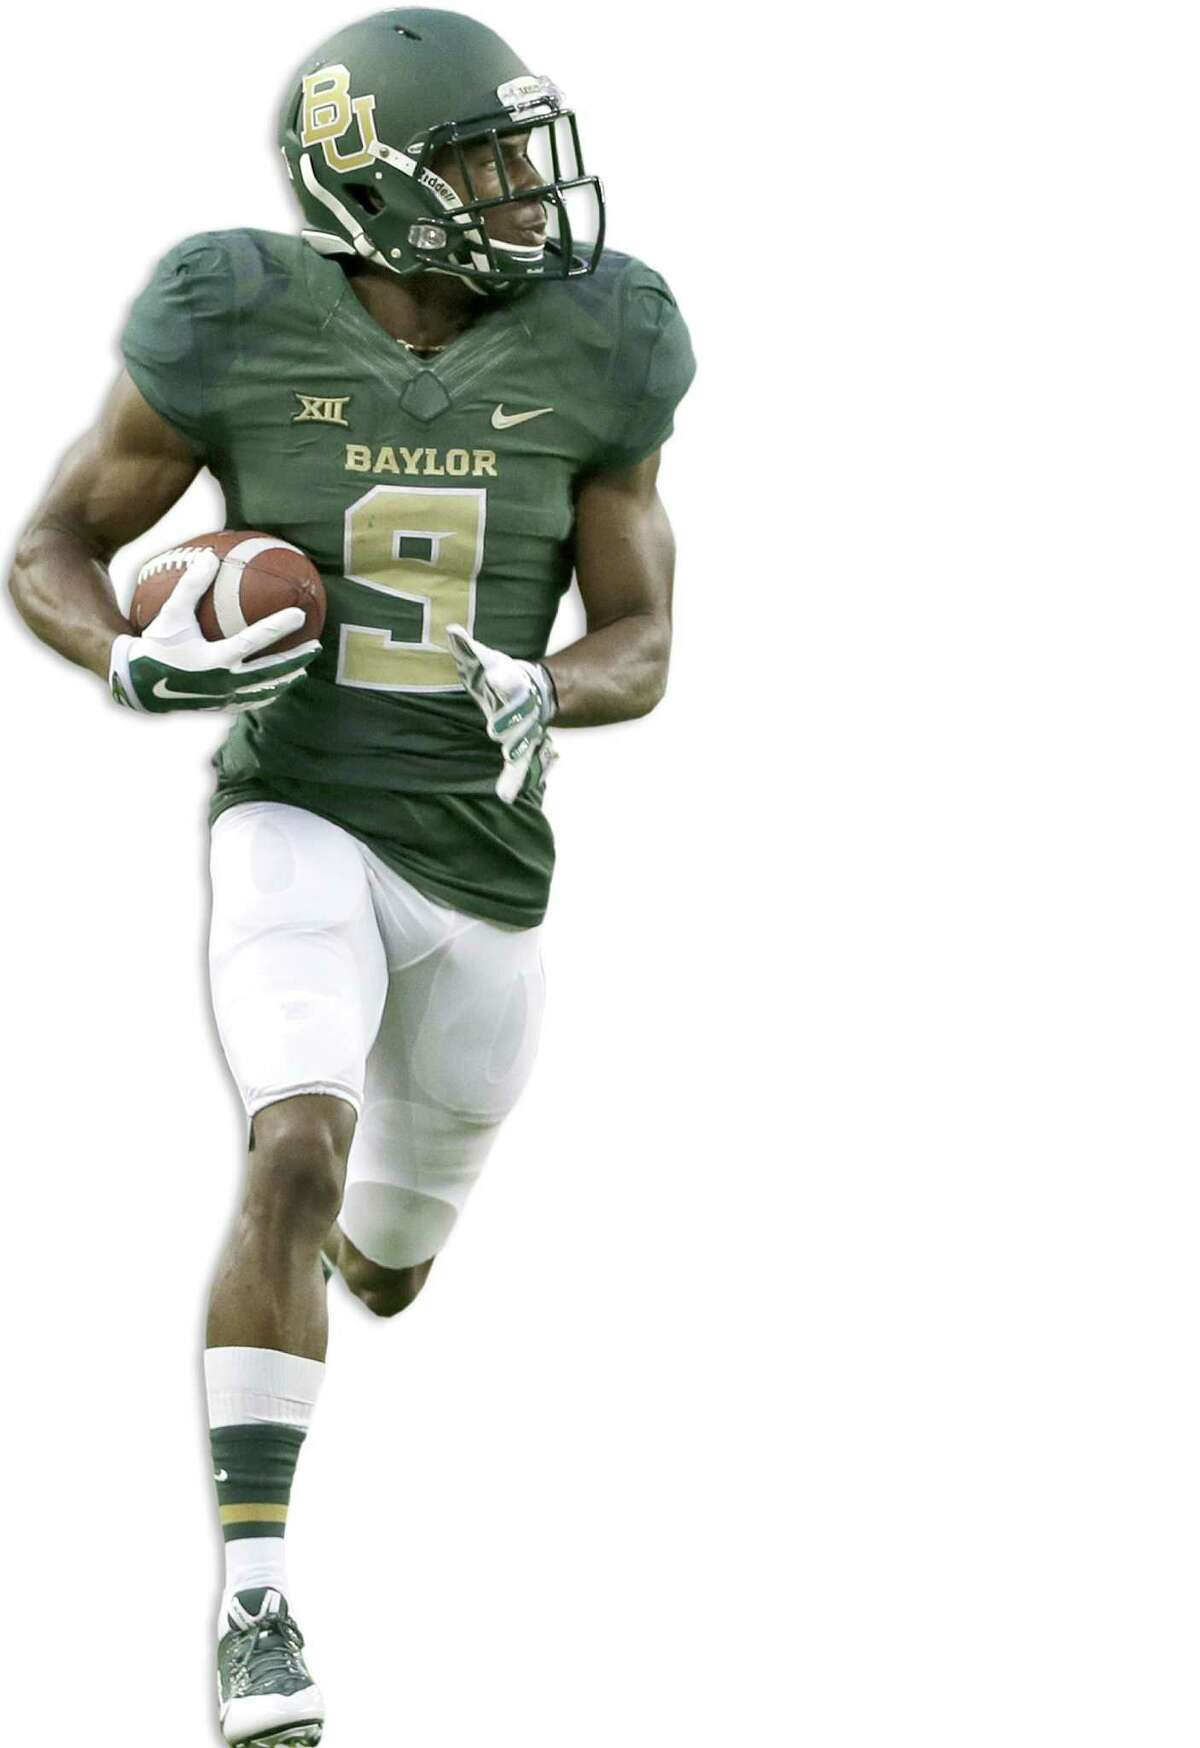 Baylor's KD Cannon has 14 receptions for 471 yards - good for a 33.6 yardsper-catch average - in his freshman season.